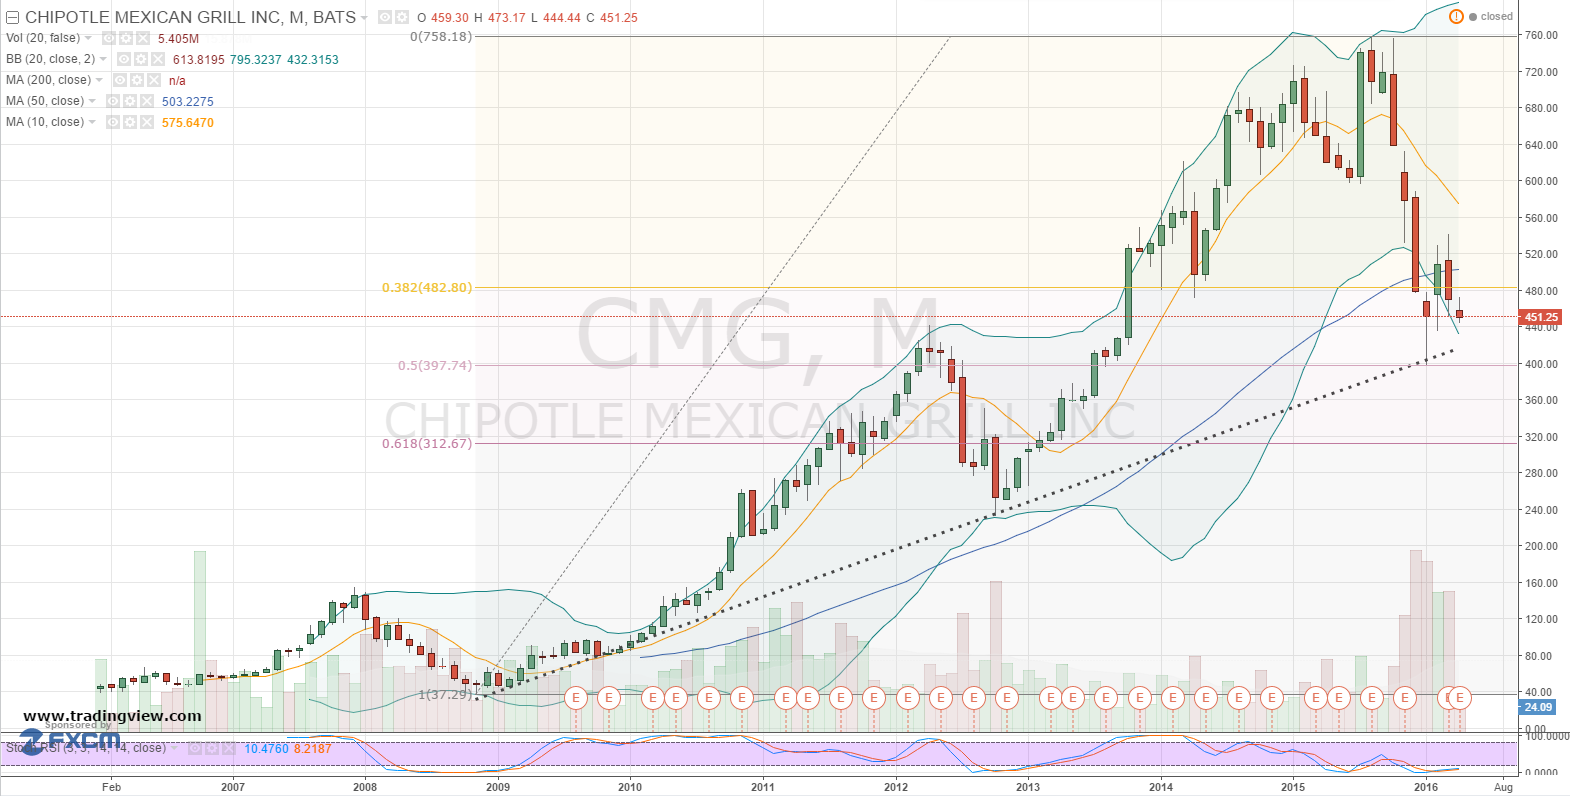 040816-cmg-stock-chart